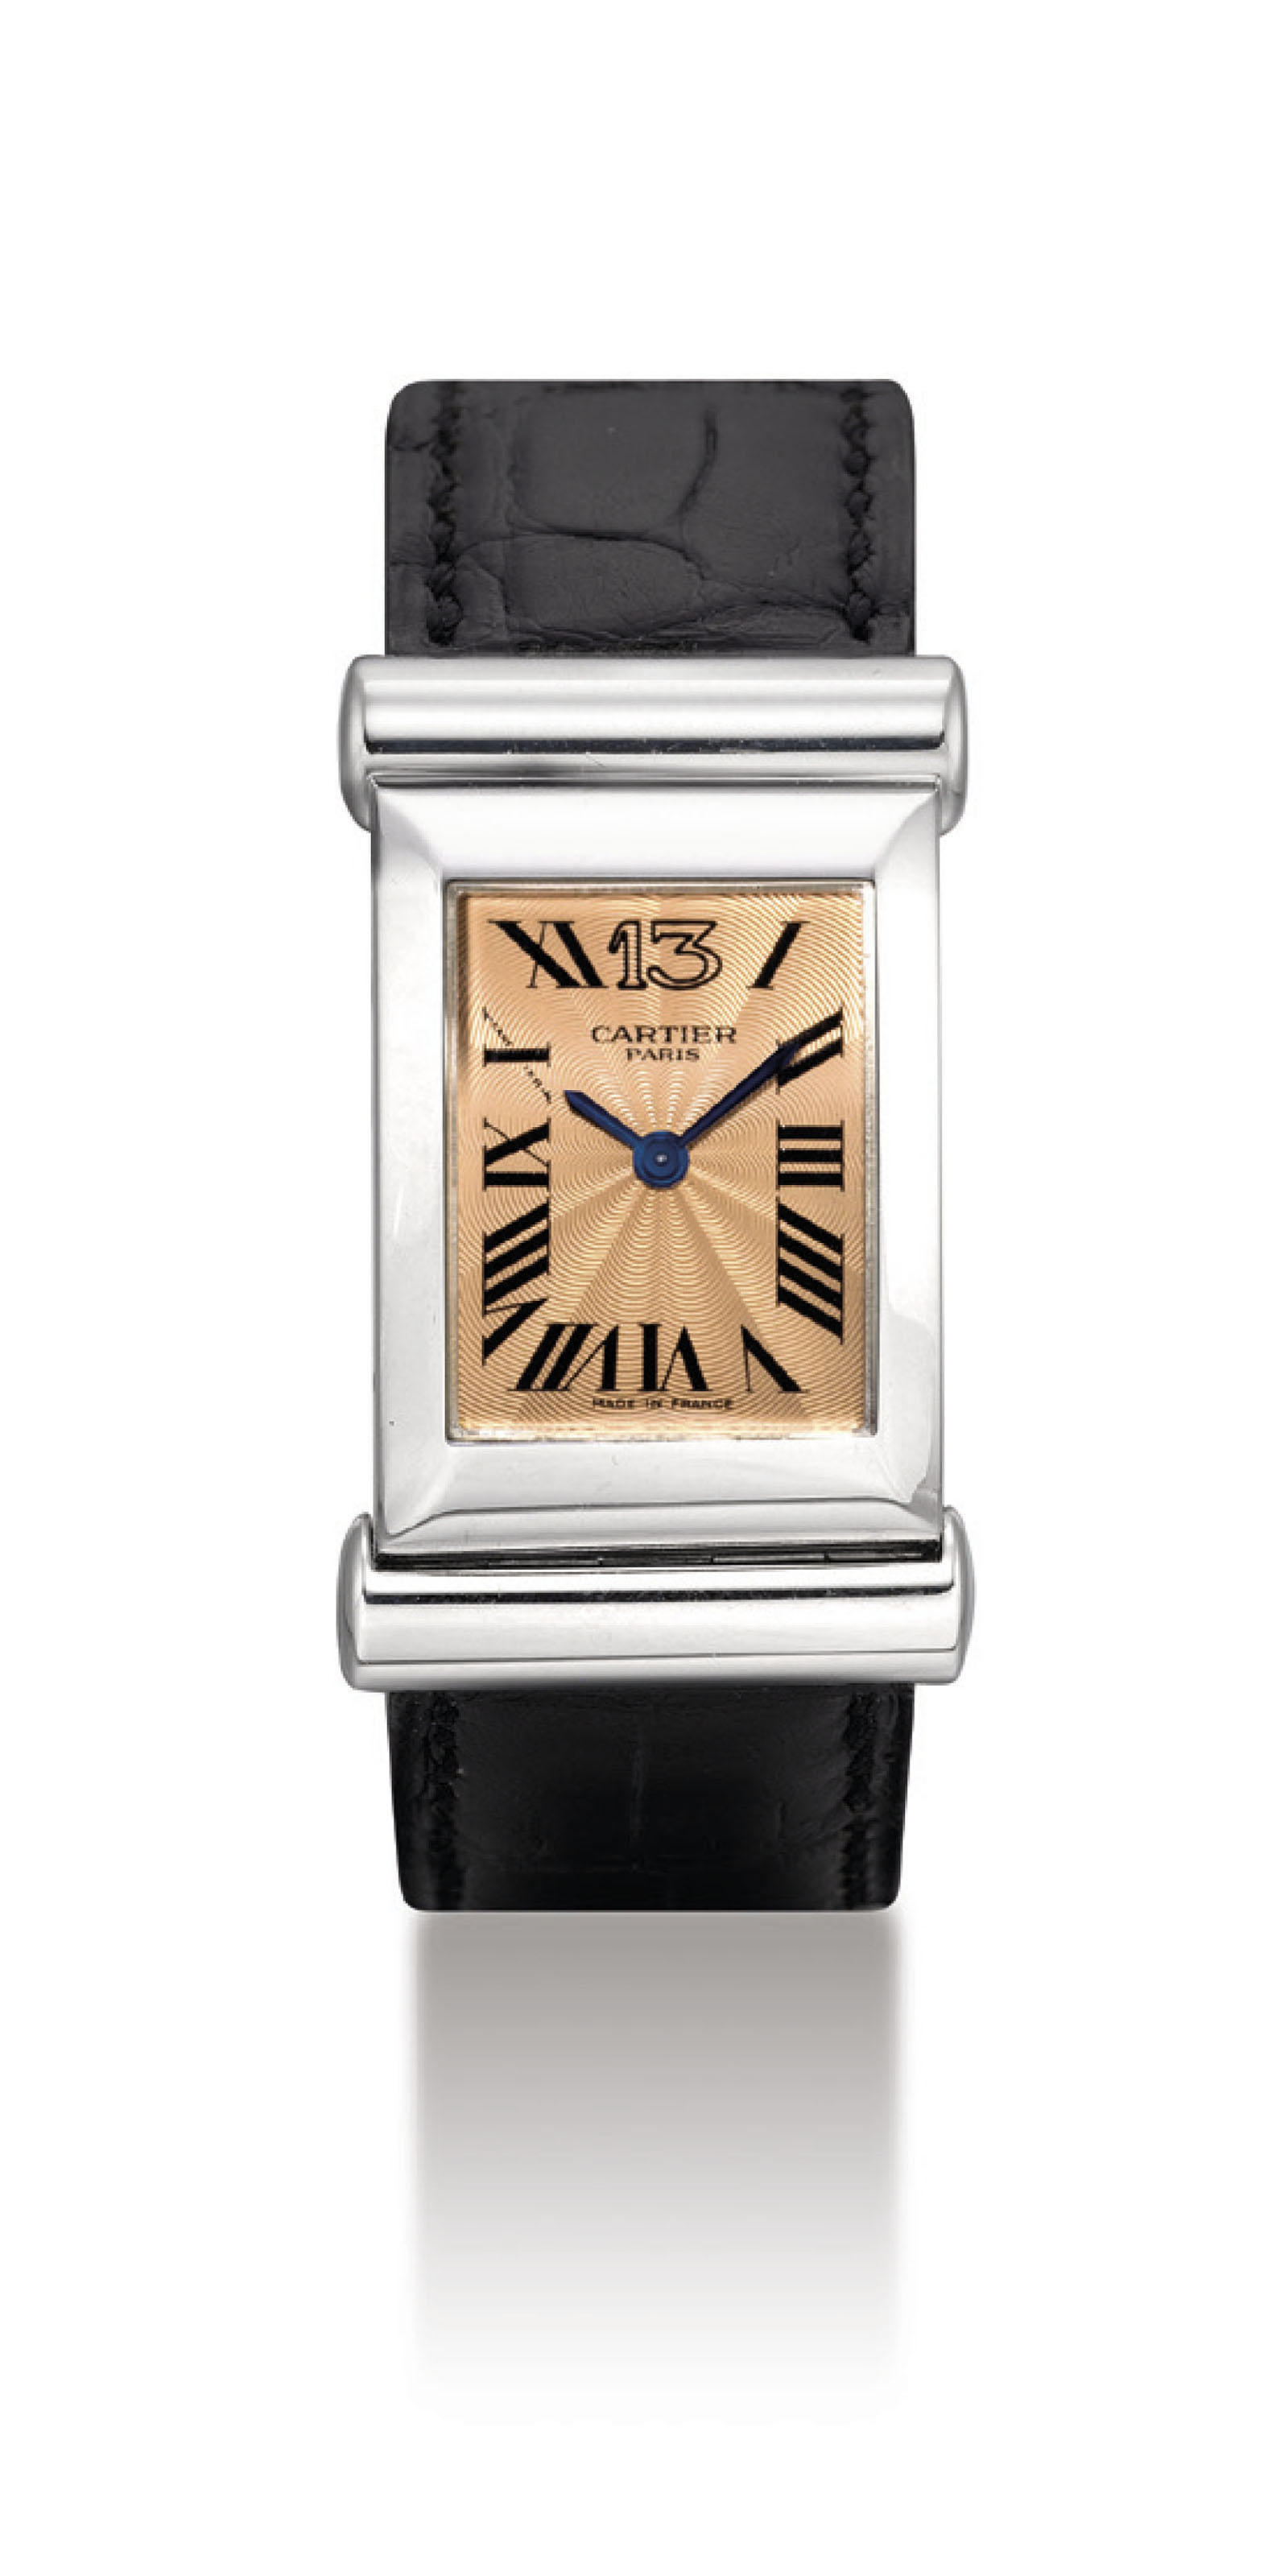 CARTIER. A FINE AND VERY RARE 18K WHITE GOLD LIMITED EDITION RECTANGULAR DRIVER'S WRISTWATCH, MADE TO COMMEMORATE THE 100TH ANNIVERSARY OF CARTIER'S BOUTIQUE AT 13 RUE DE LA PAIX IN PARIS